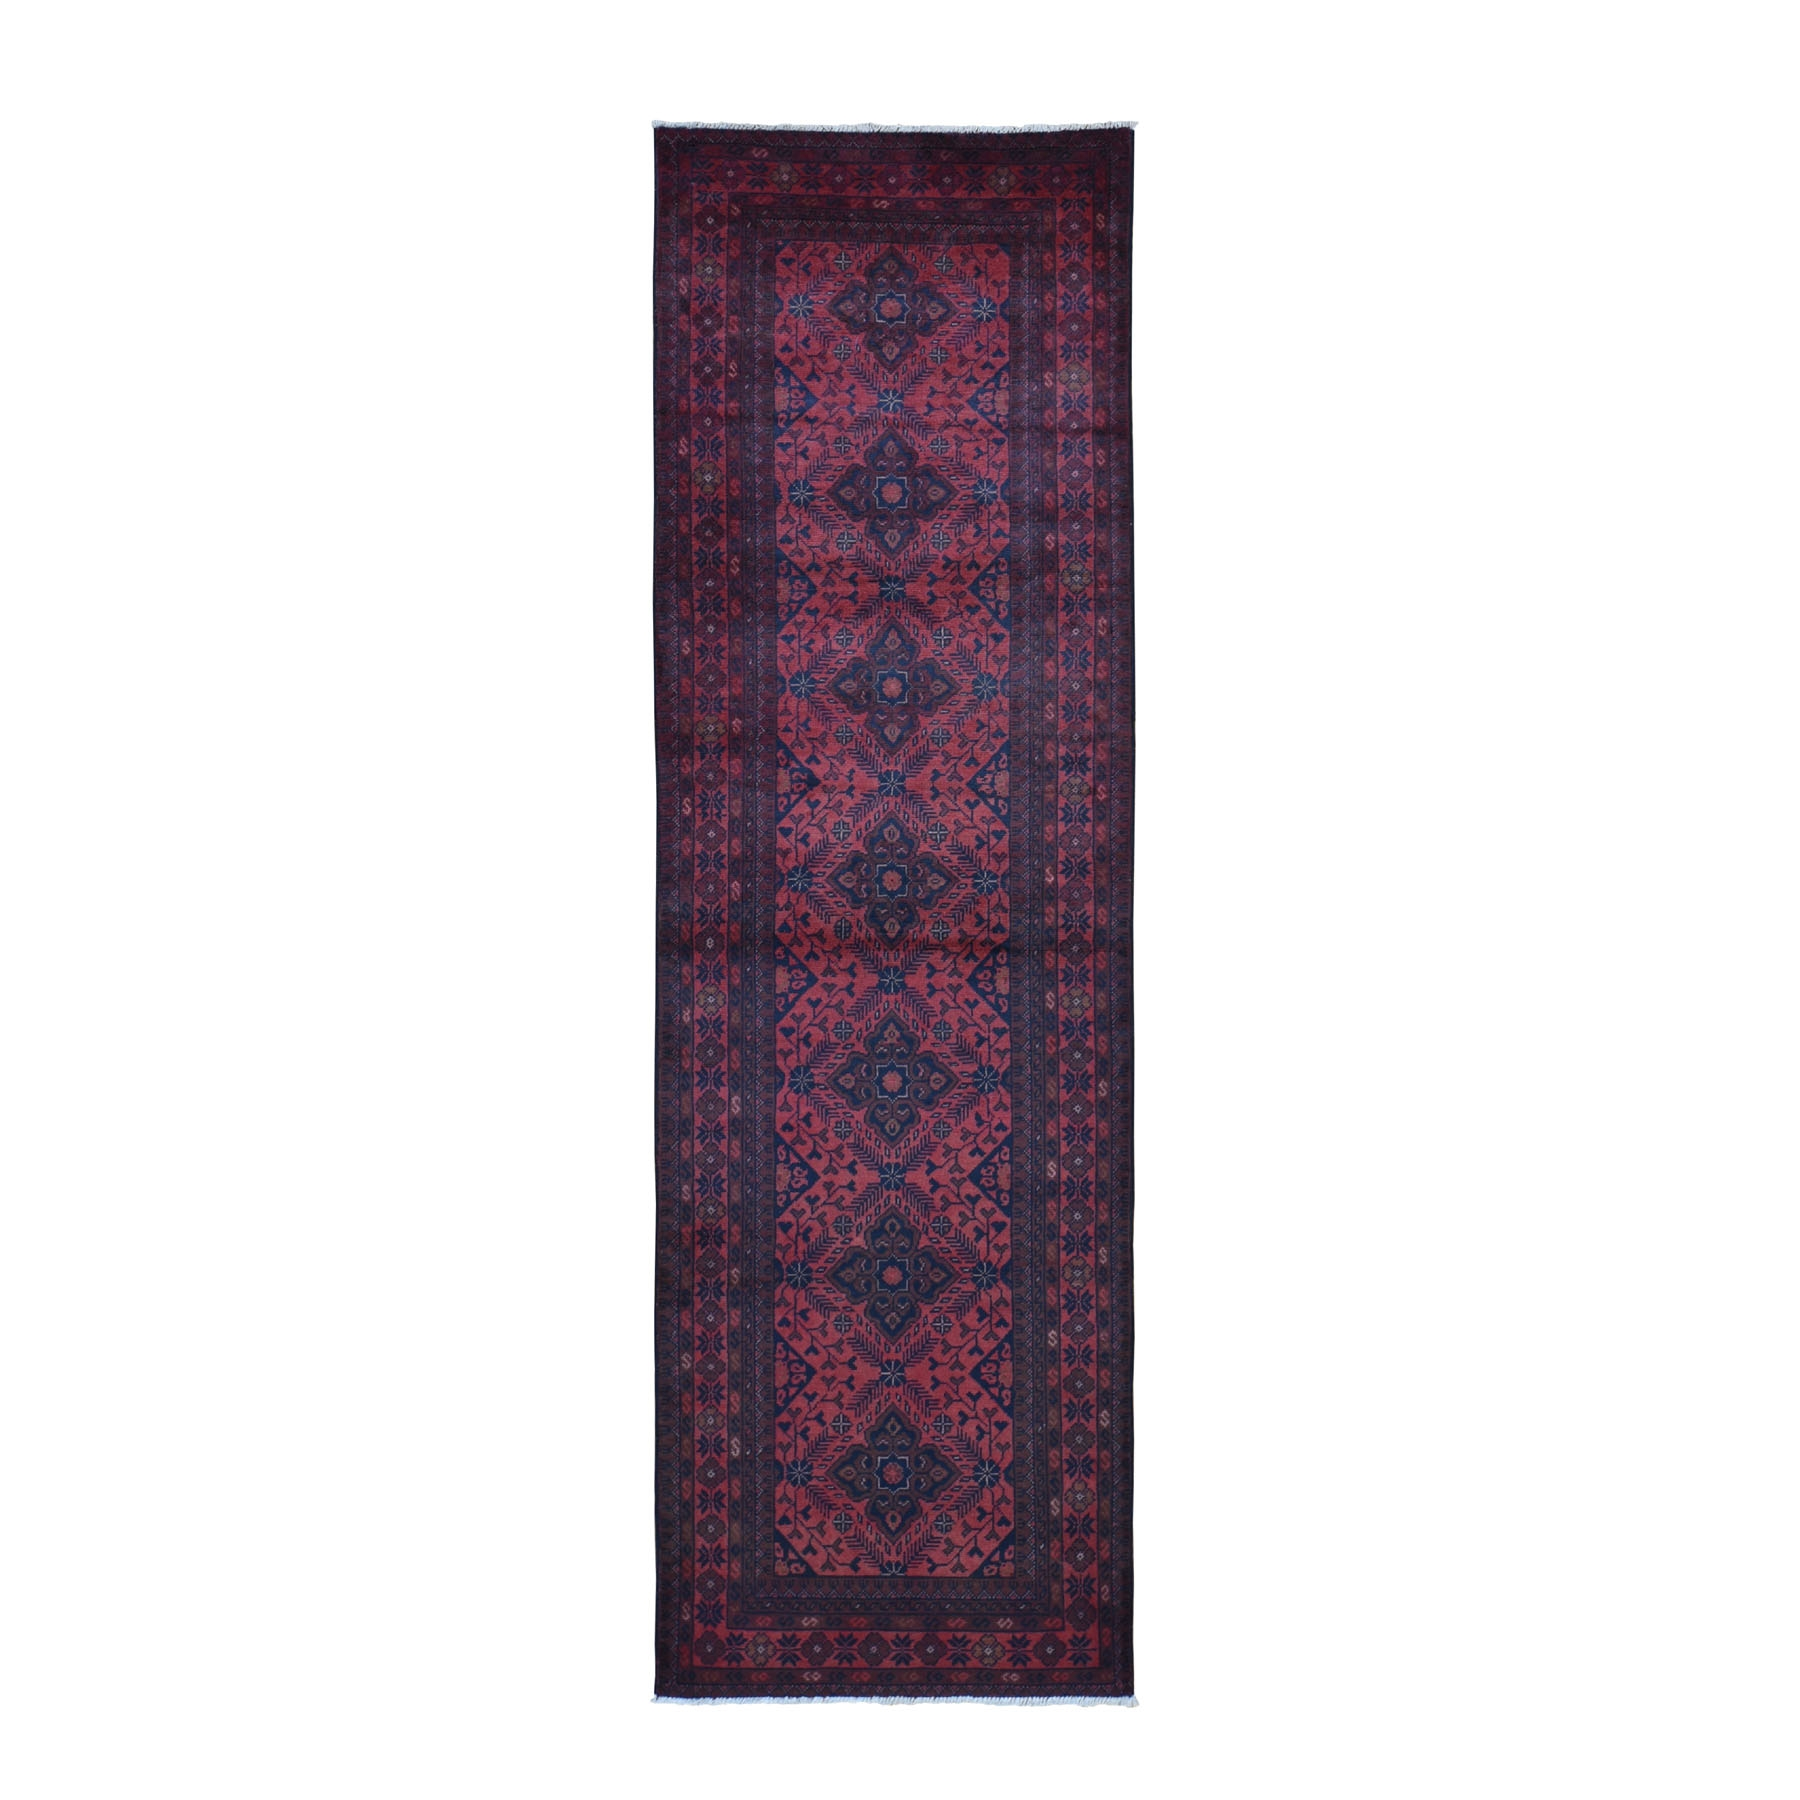 Nomadic And Village Collection Hand Knotted Red Rug No: 0199462